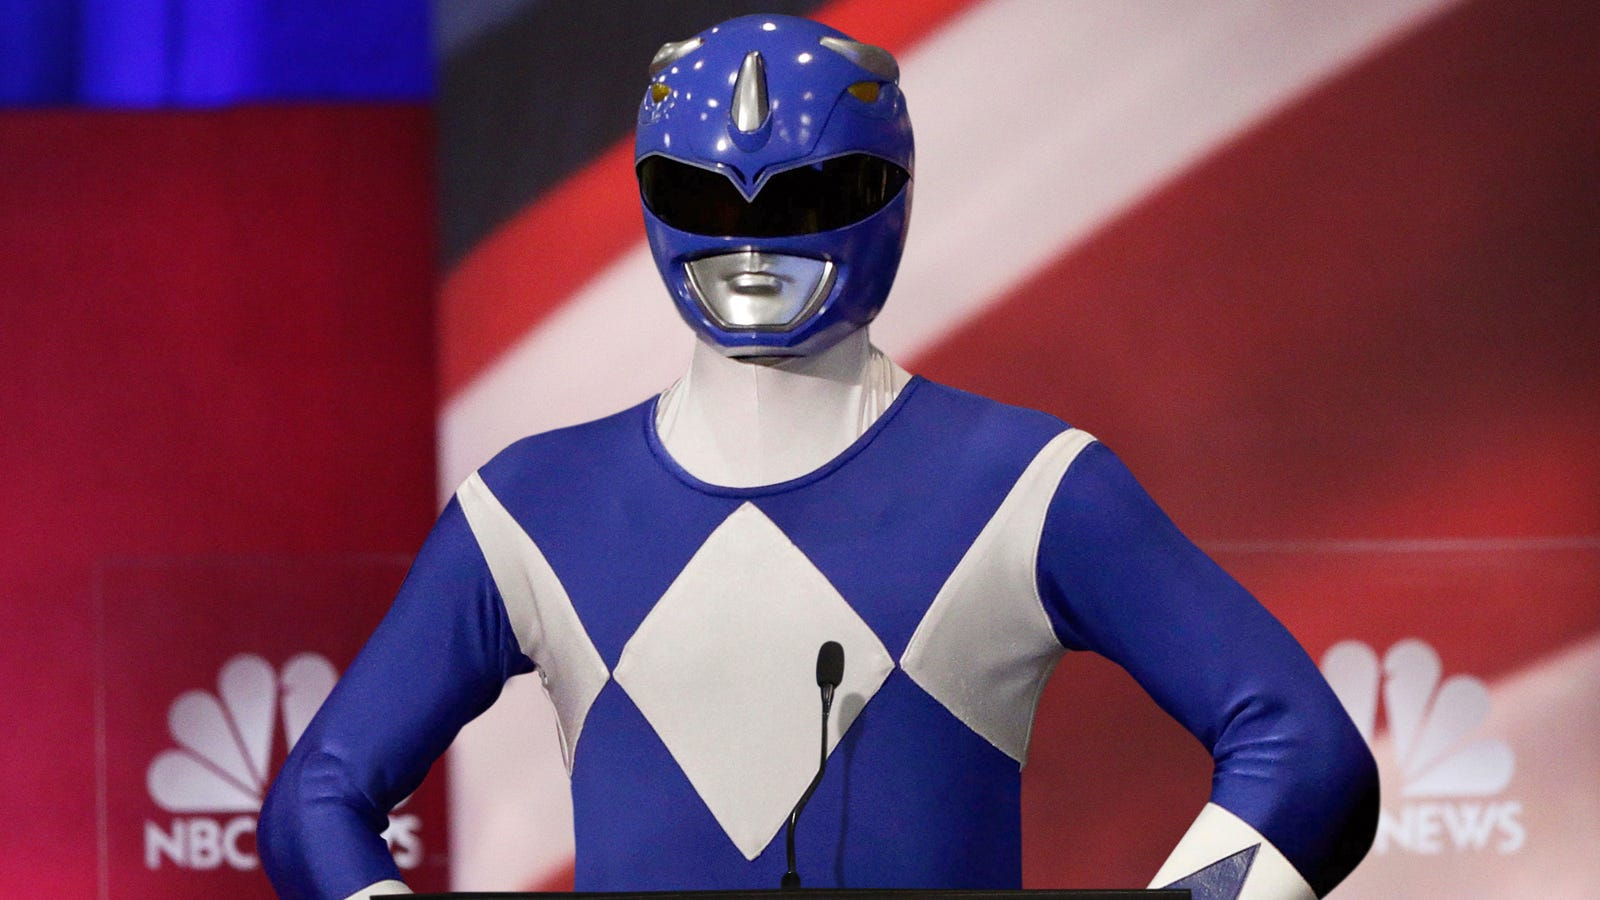 Tim Ryan Attempting To Stand Out From Other Candidates On Debate Stage By Wearing Blue Power Ranger Costume